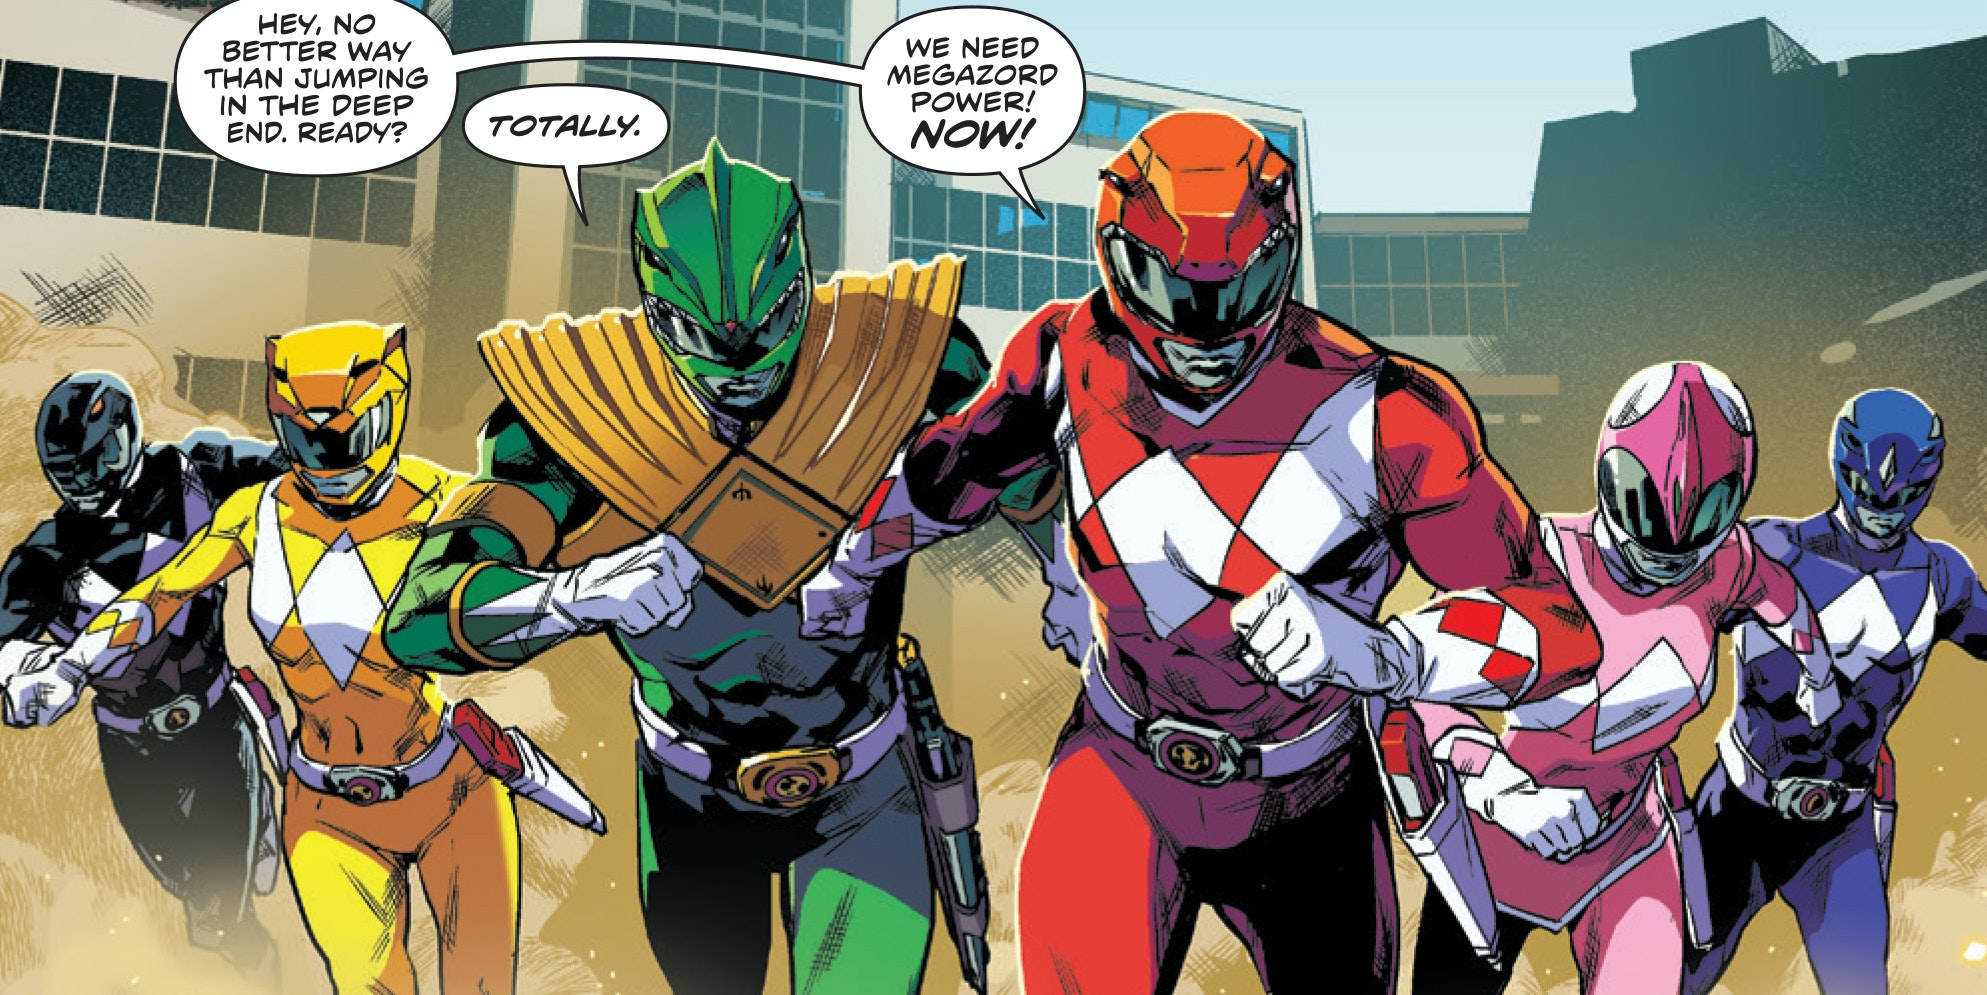 Anti-Nostalgic 'Power Rangers' Was One of 2016's Best Comics